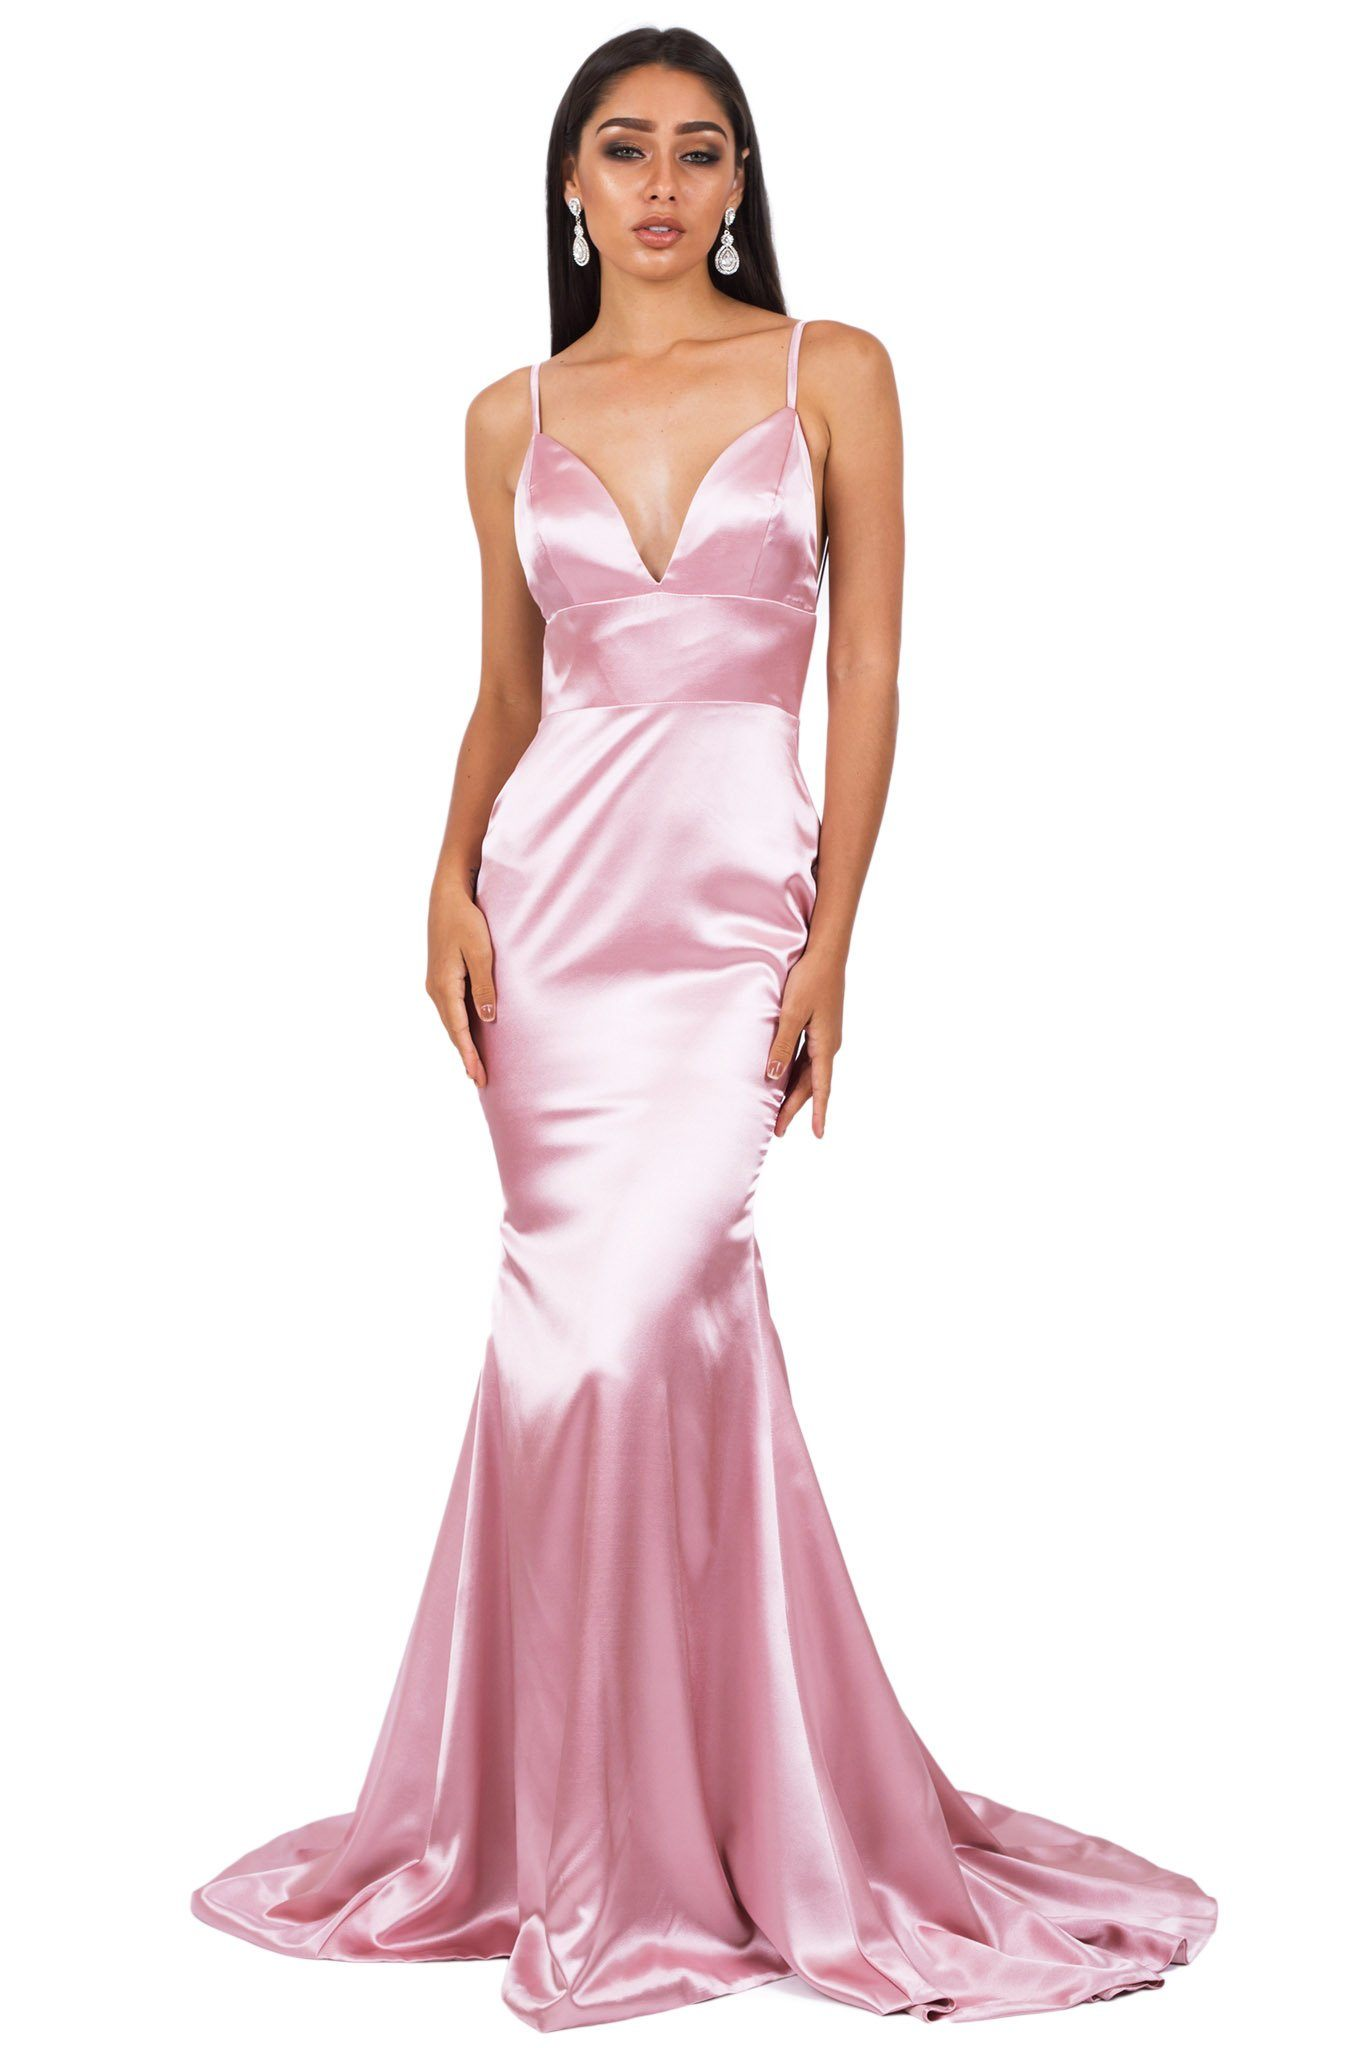 Front of blush pink silk satin floor length formal evening sleeveless gown with V neckline, thin shoulder straps, backless design and long train